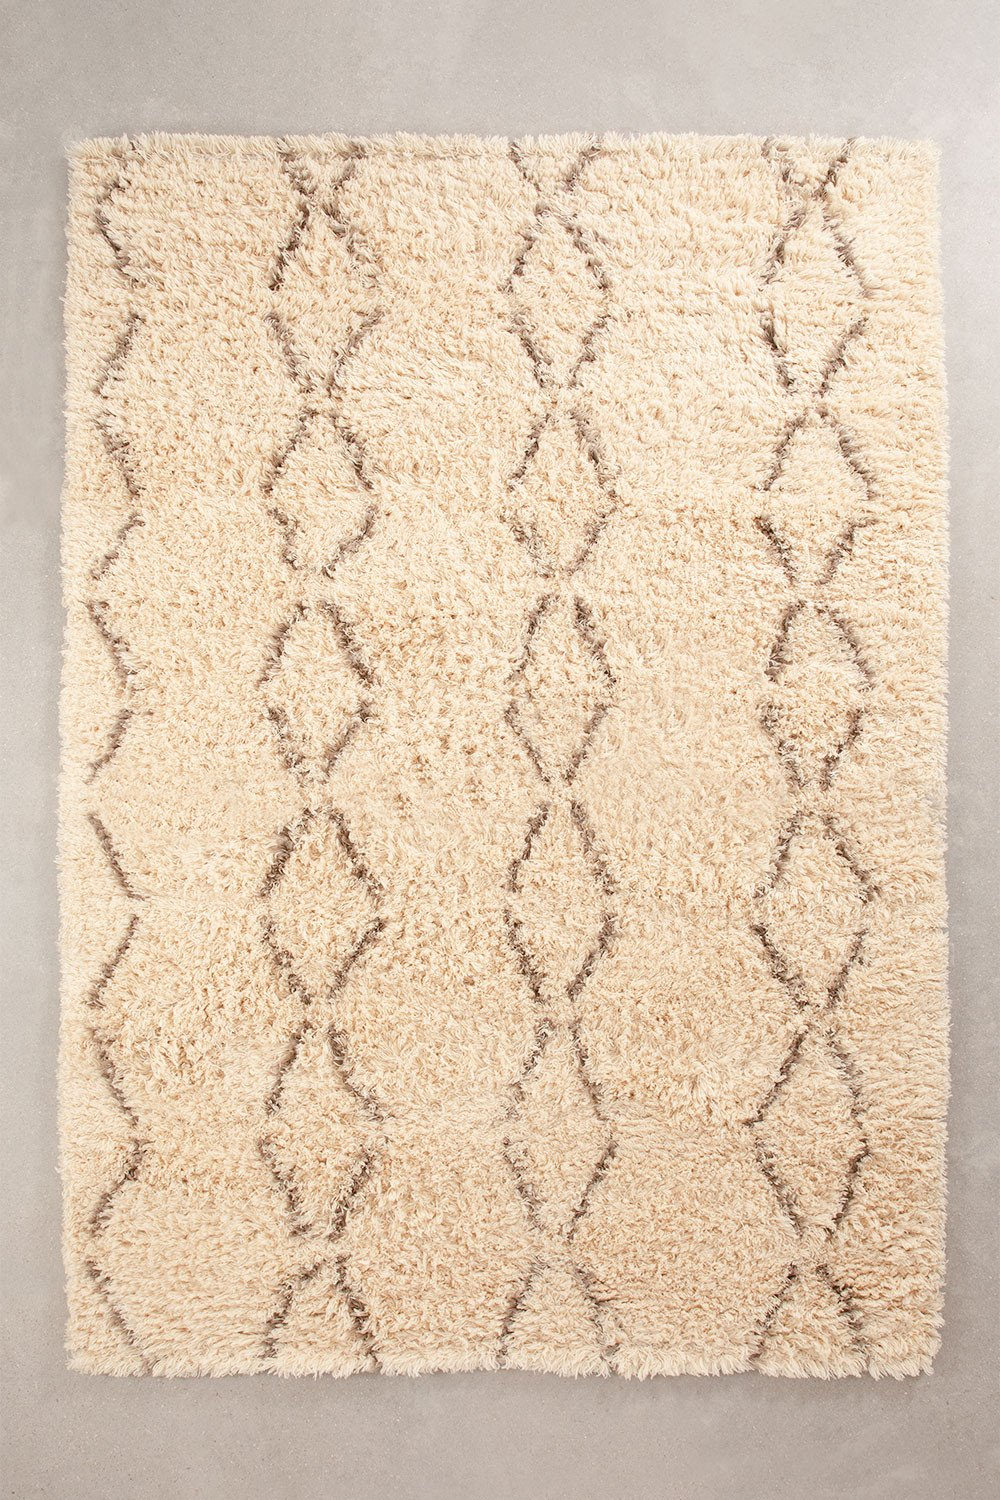 Cotton and Wool Rug (230x165 cm) Ewan, gallery image 1